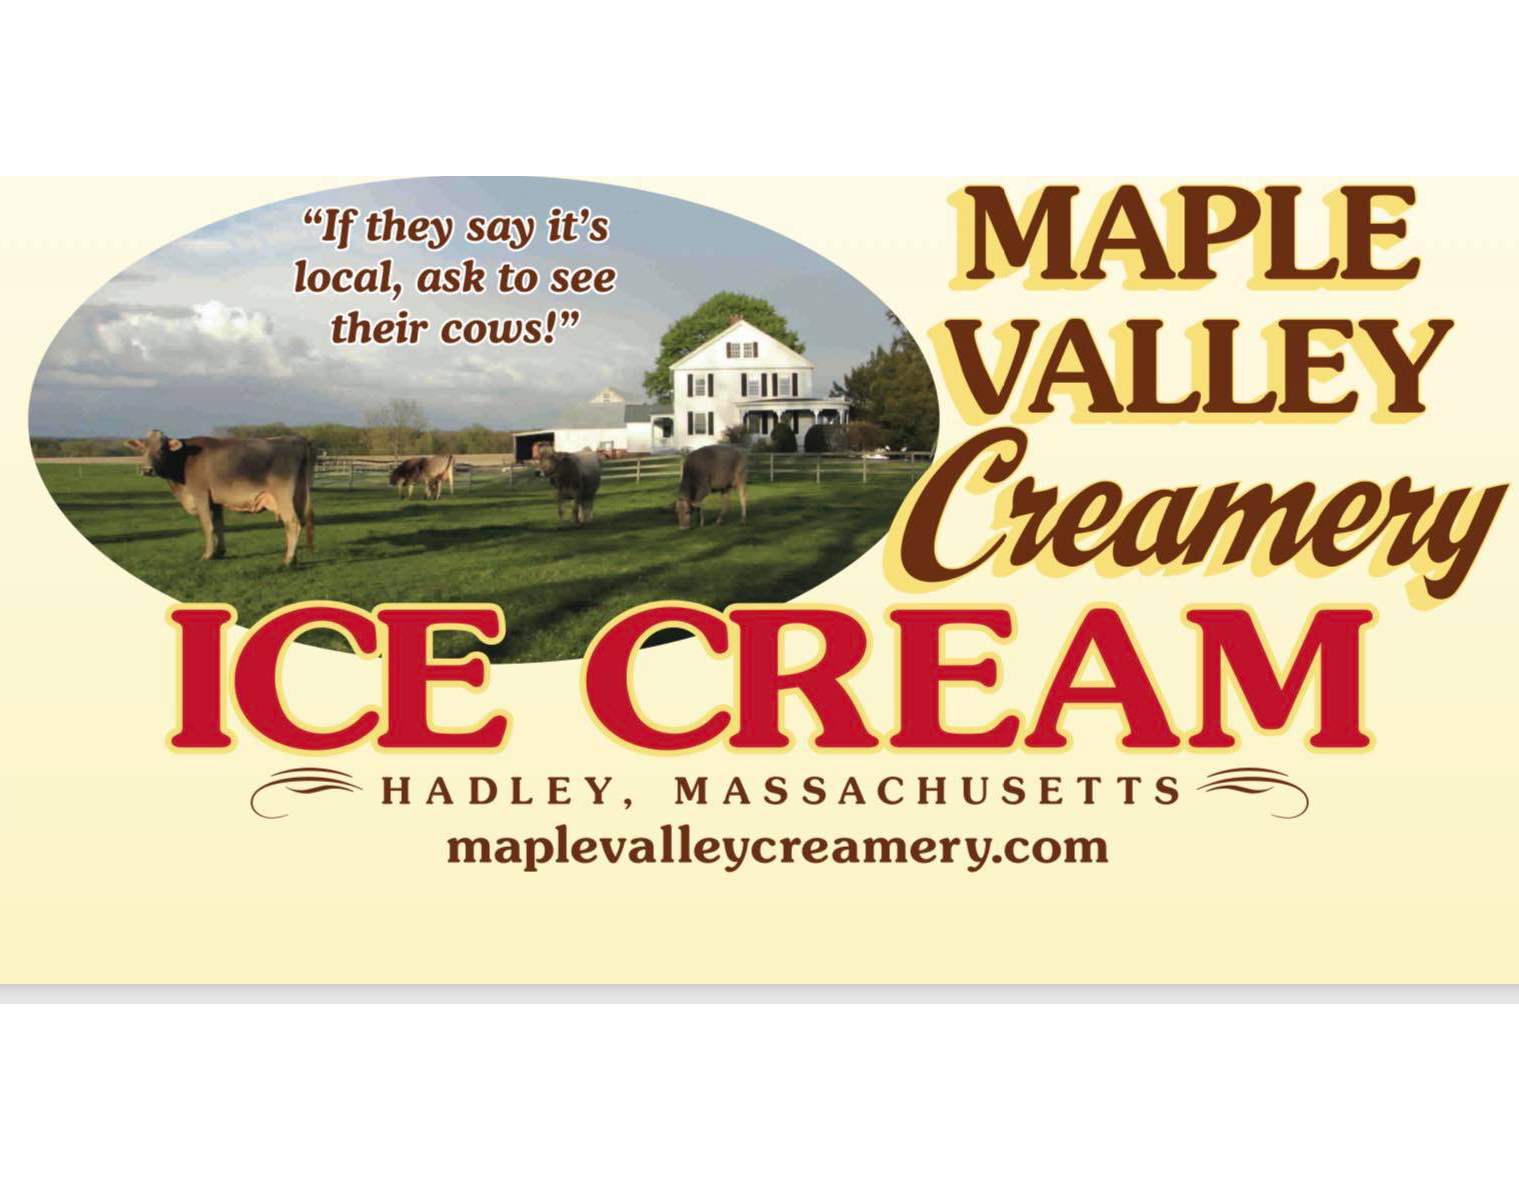 Maple Valley Ice Cream - The Maple Valley Creamery was founded by award winning farmers who believe that quality ice cream should be made using fresh milk and cream from local cows.By purchasing this product, you are helping to sustain open spaces, local dairy farms and a time-honored way of life.